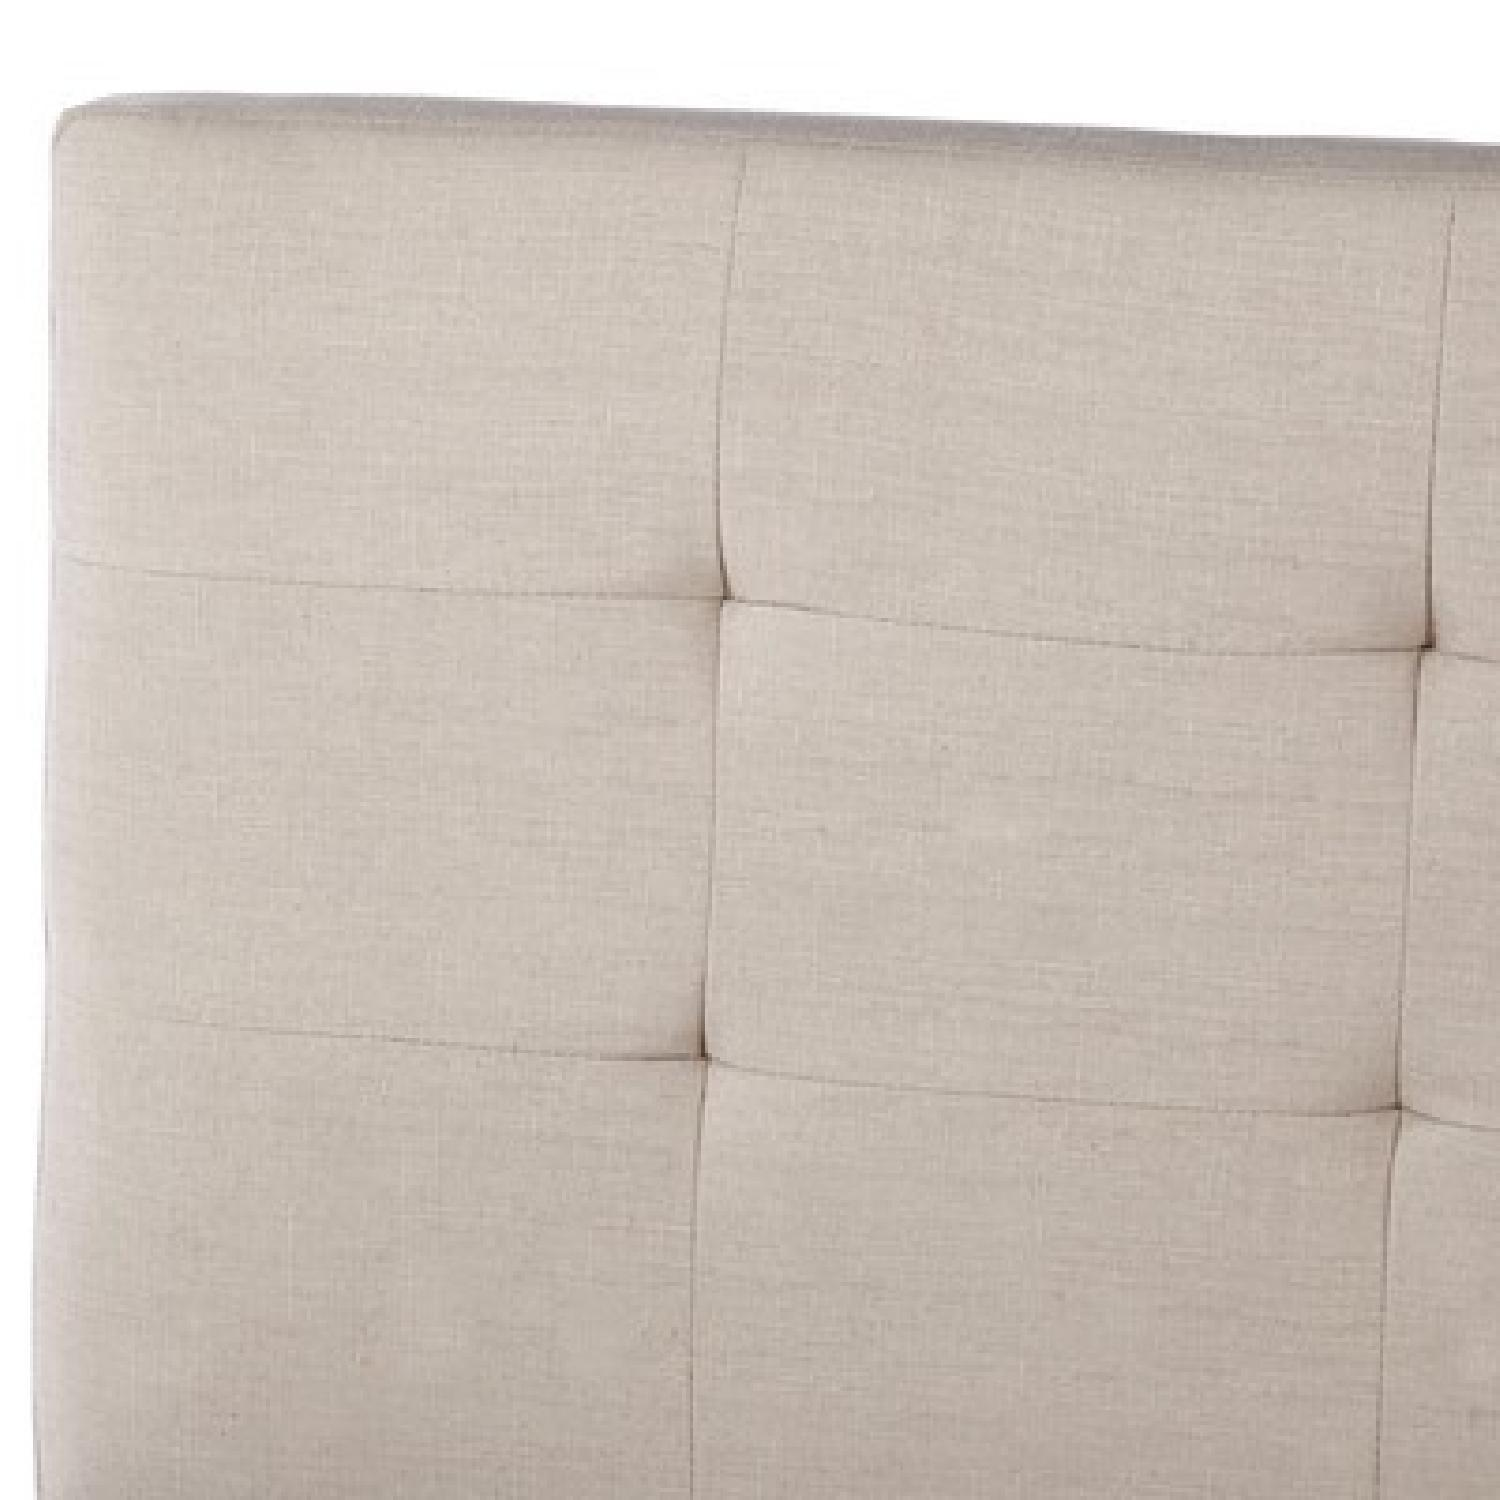 Queen Bed Frame w/ Linen Upholstered Tufted Headboard in Natural Oatmeal - image-3